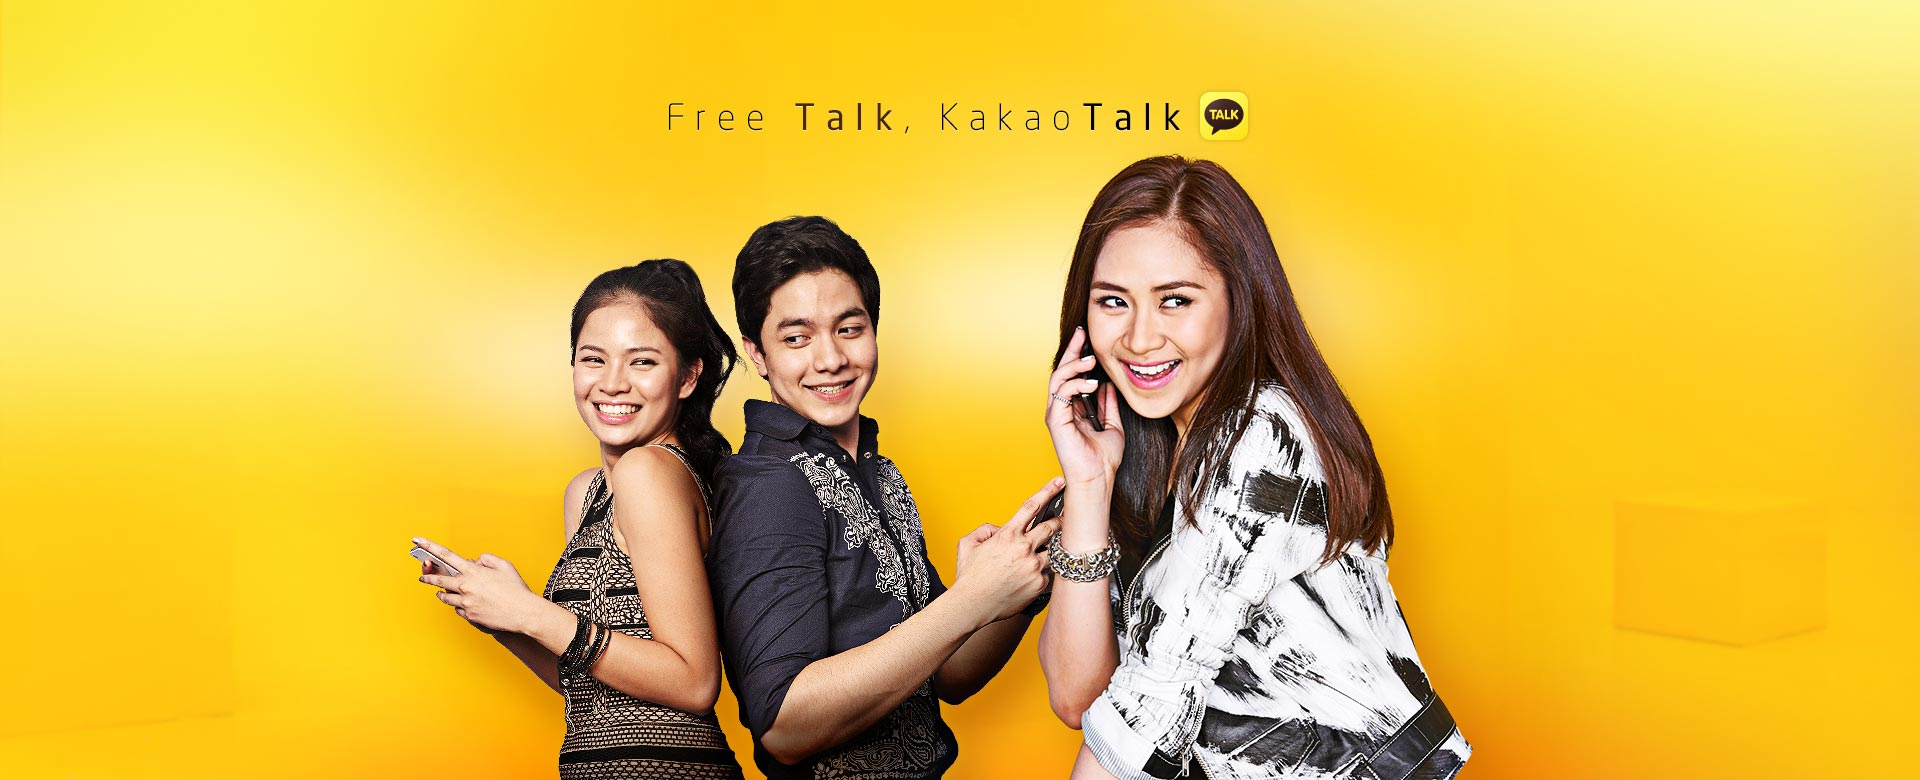 Private & Secure, KakaoTalk Gives Users Peace of Mind